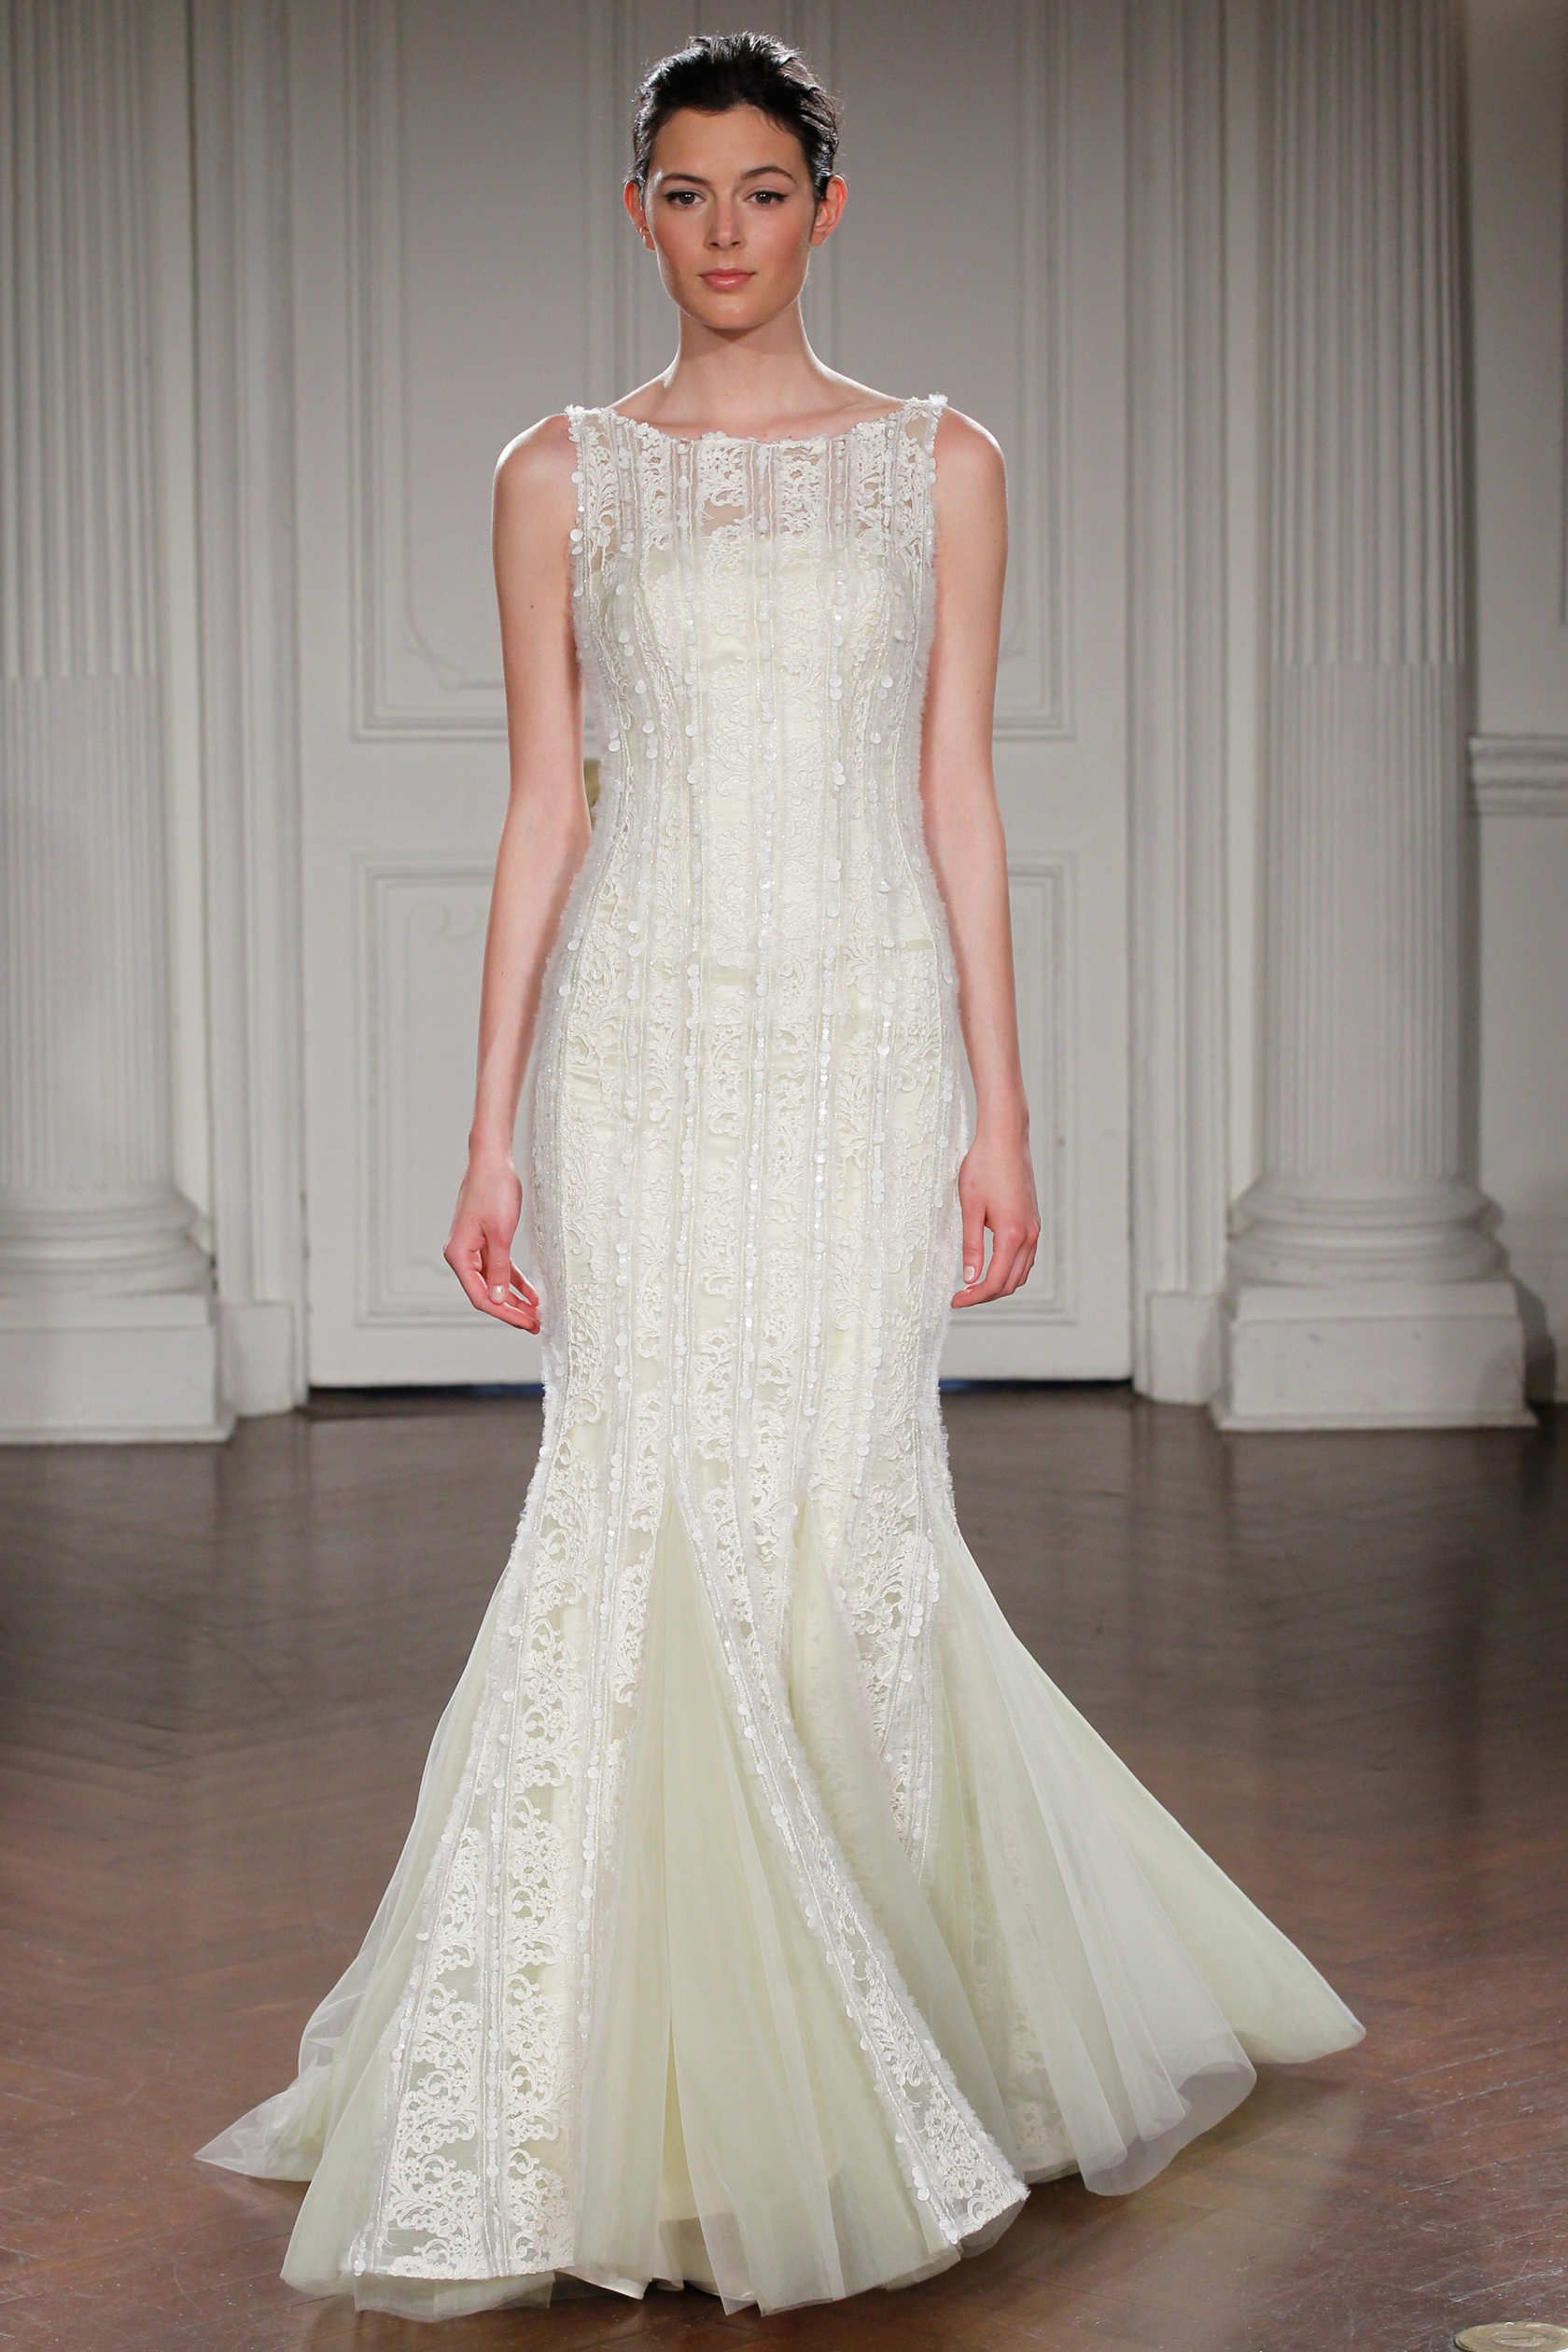 JASMINE - Mermaid gown in silk organza with crystals embroidered